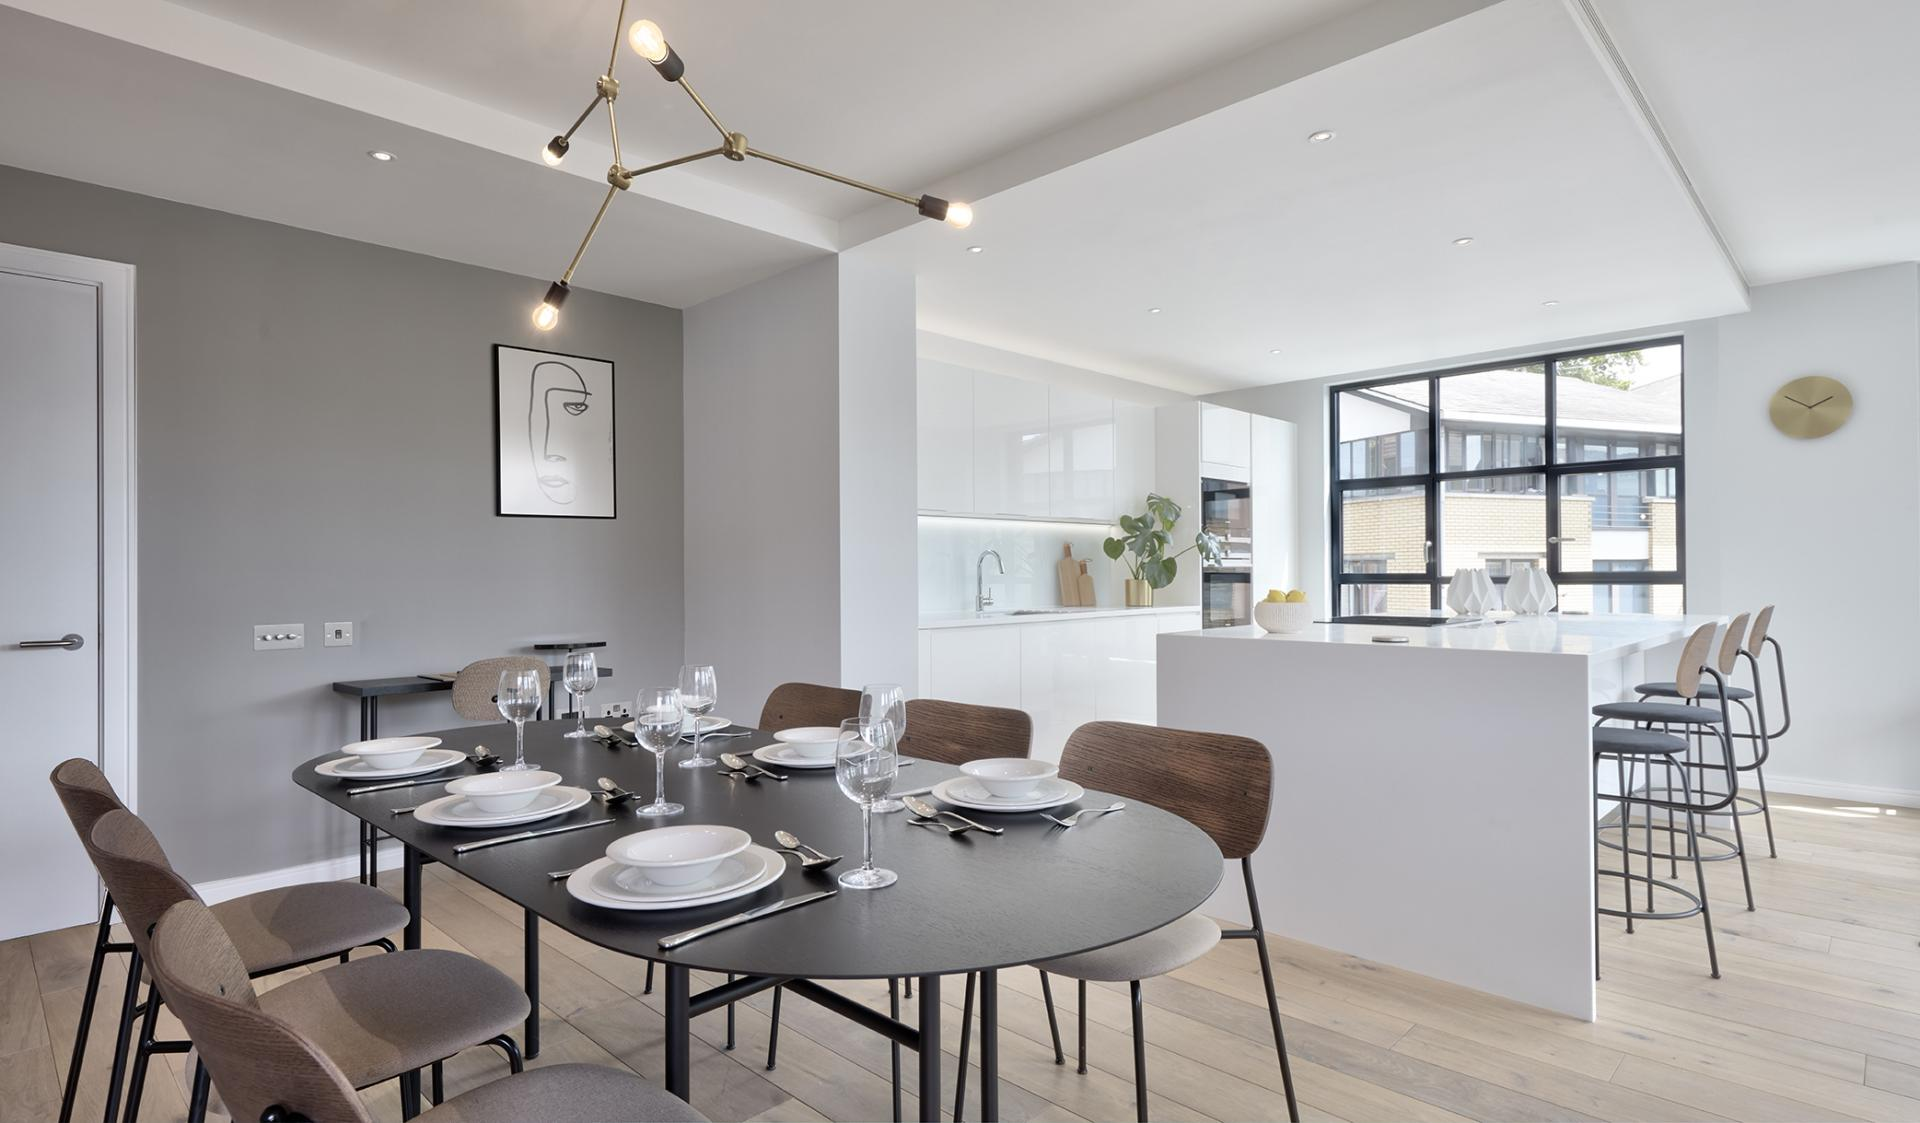 Dining room table at STAY Camden Serviced Apartments